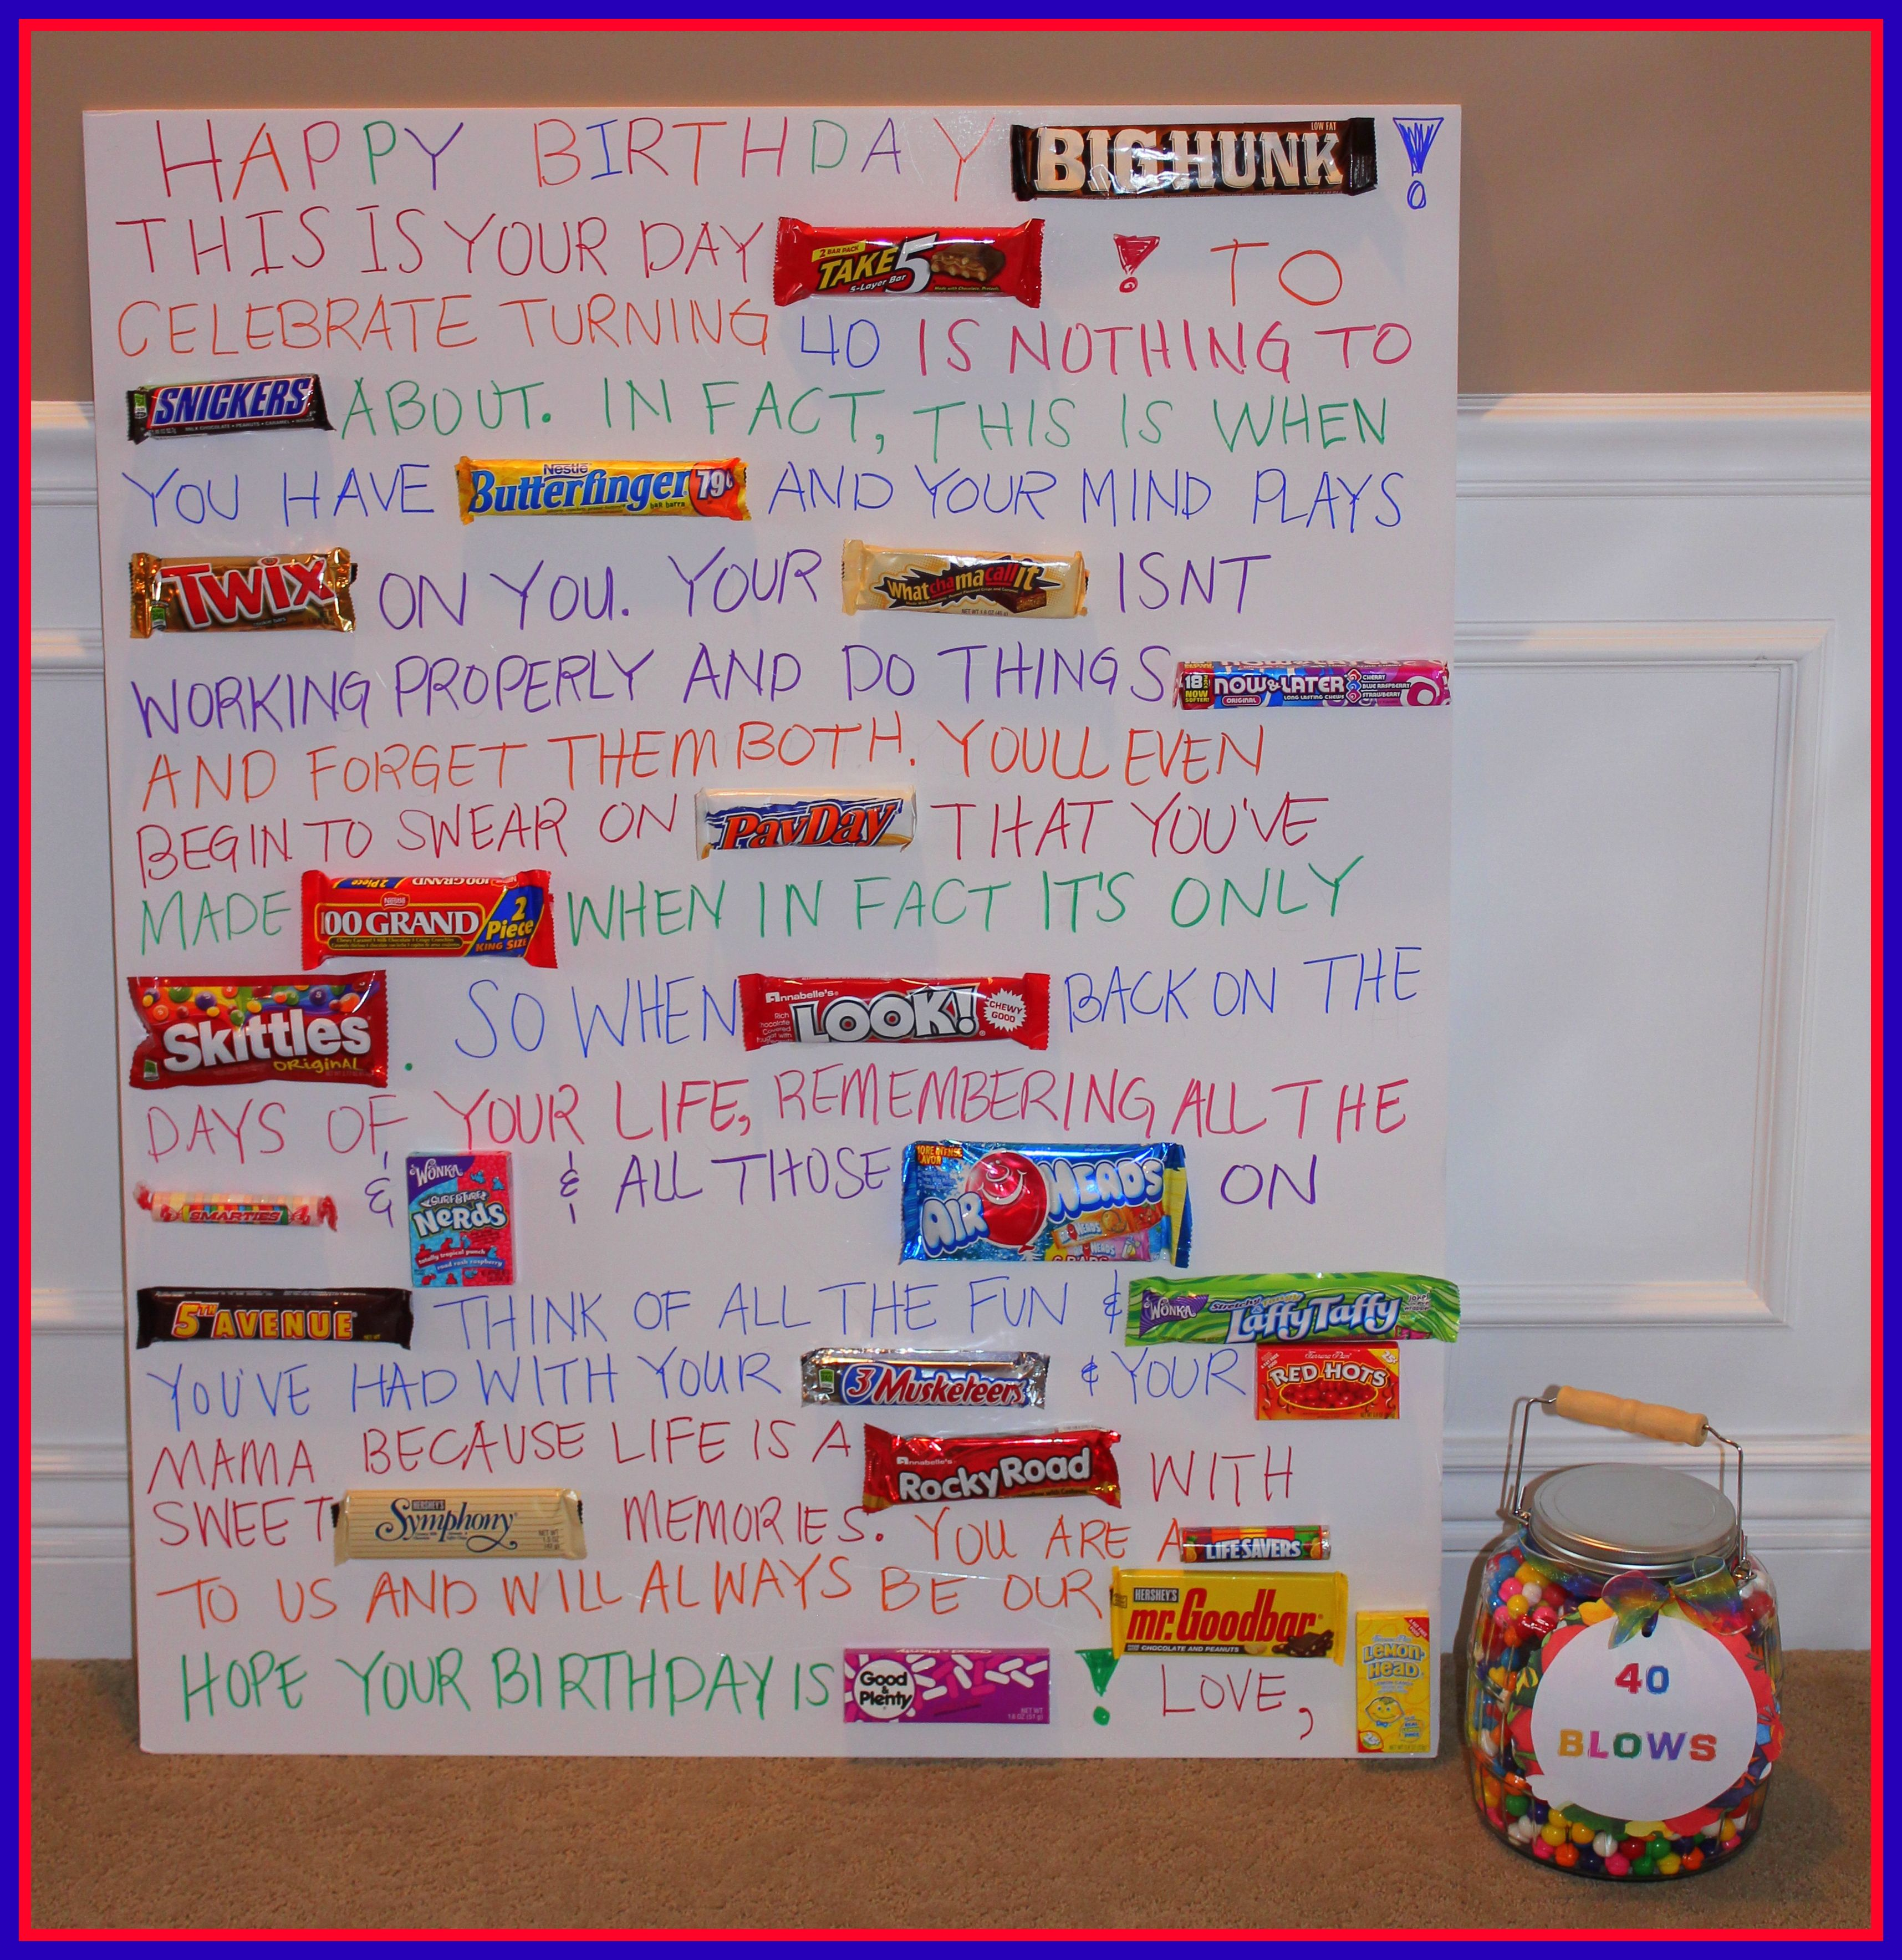 candy bar poster for 40th birthday ; e57fc61367d5a2579a46ea792fdefe0c